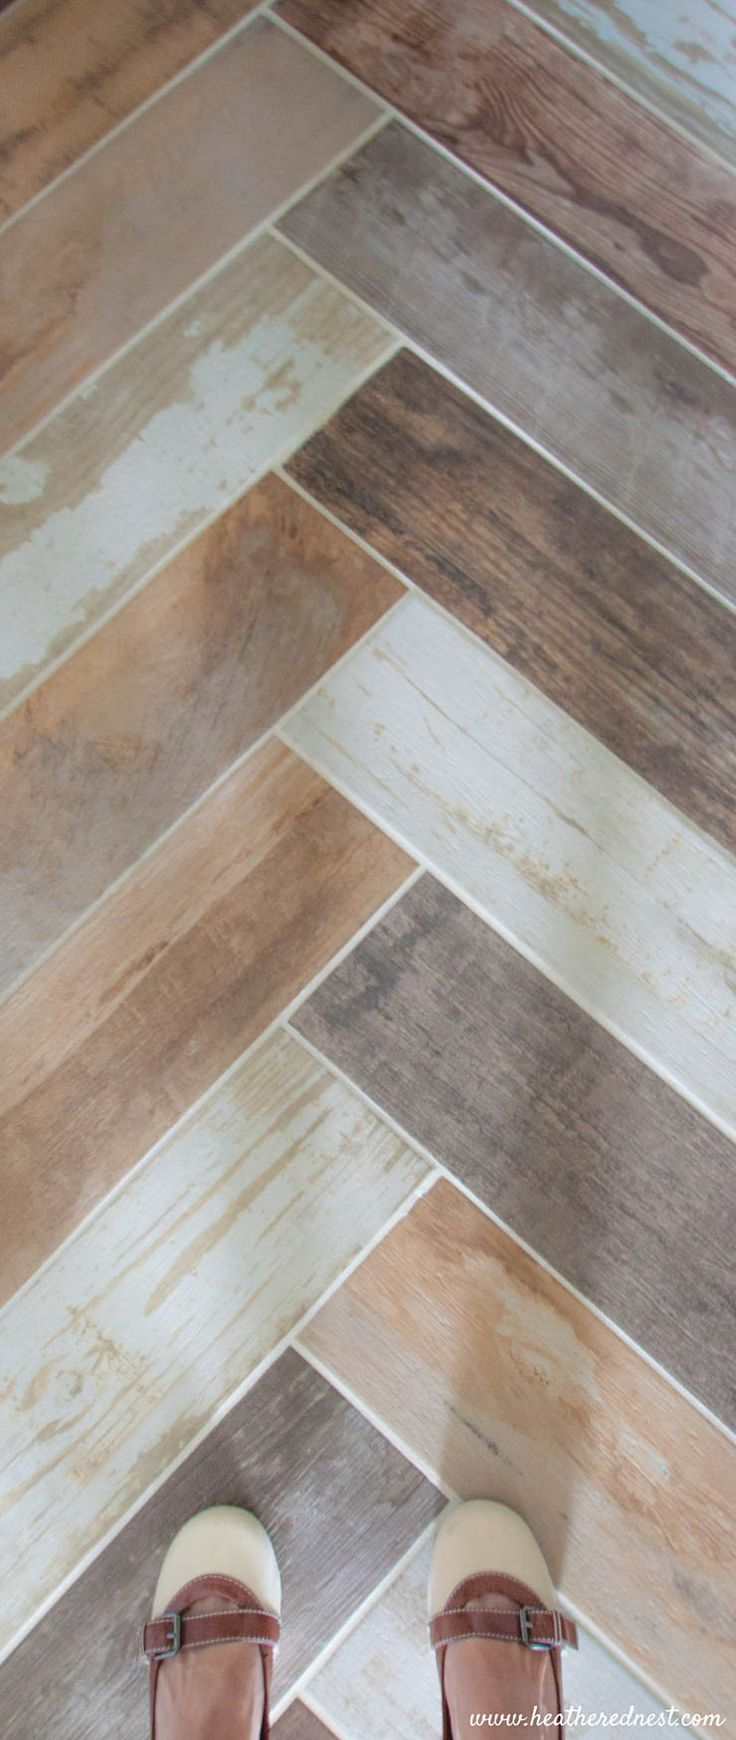 Best 25 Faux Wood Tiles Ideas On Pinterest Faux Wood Flooring Wood Tile In Bathroom And Wood